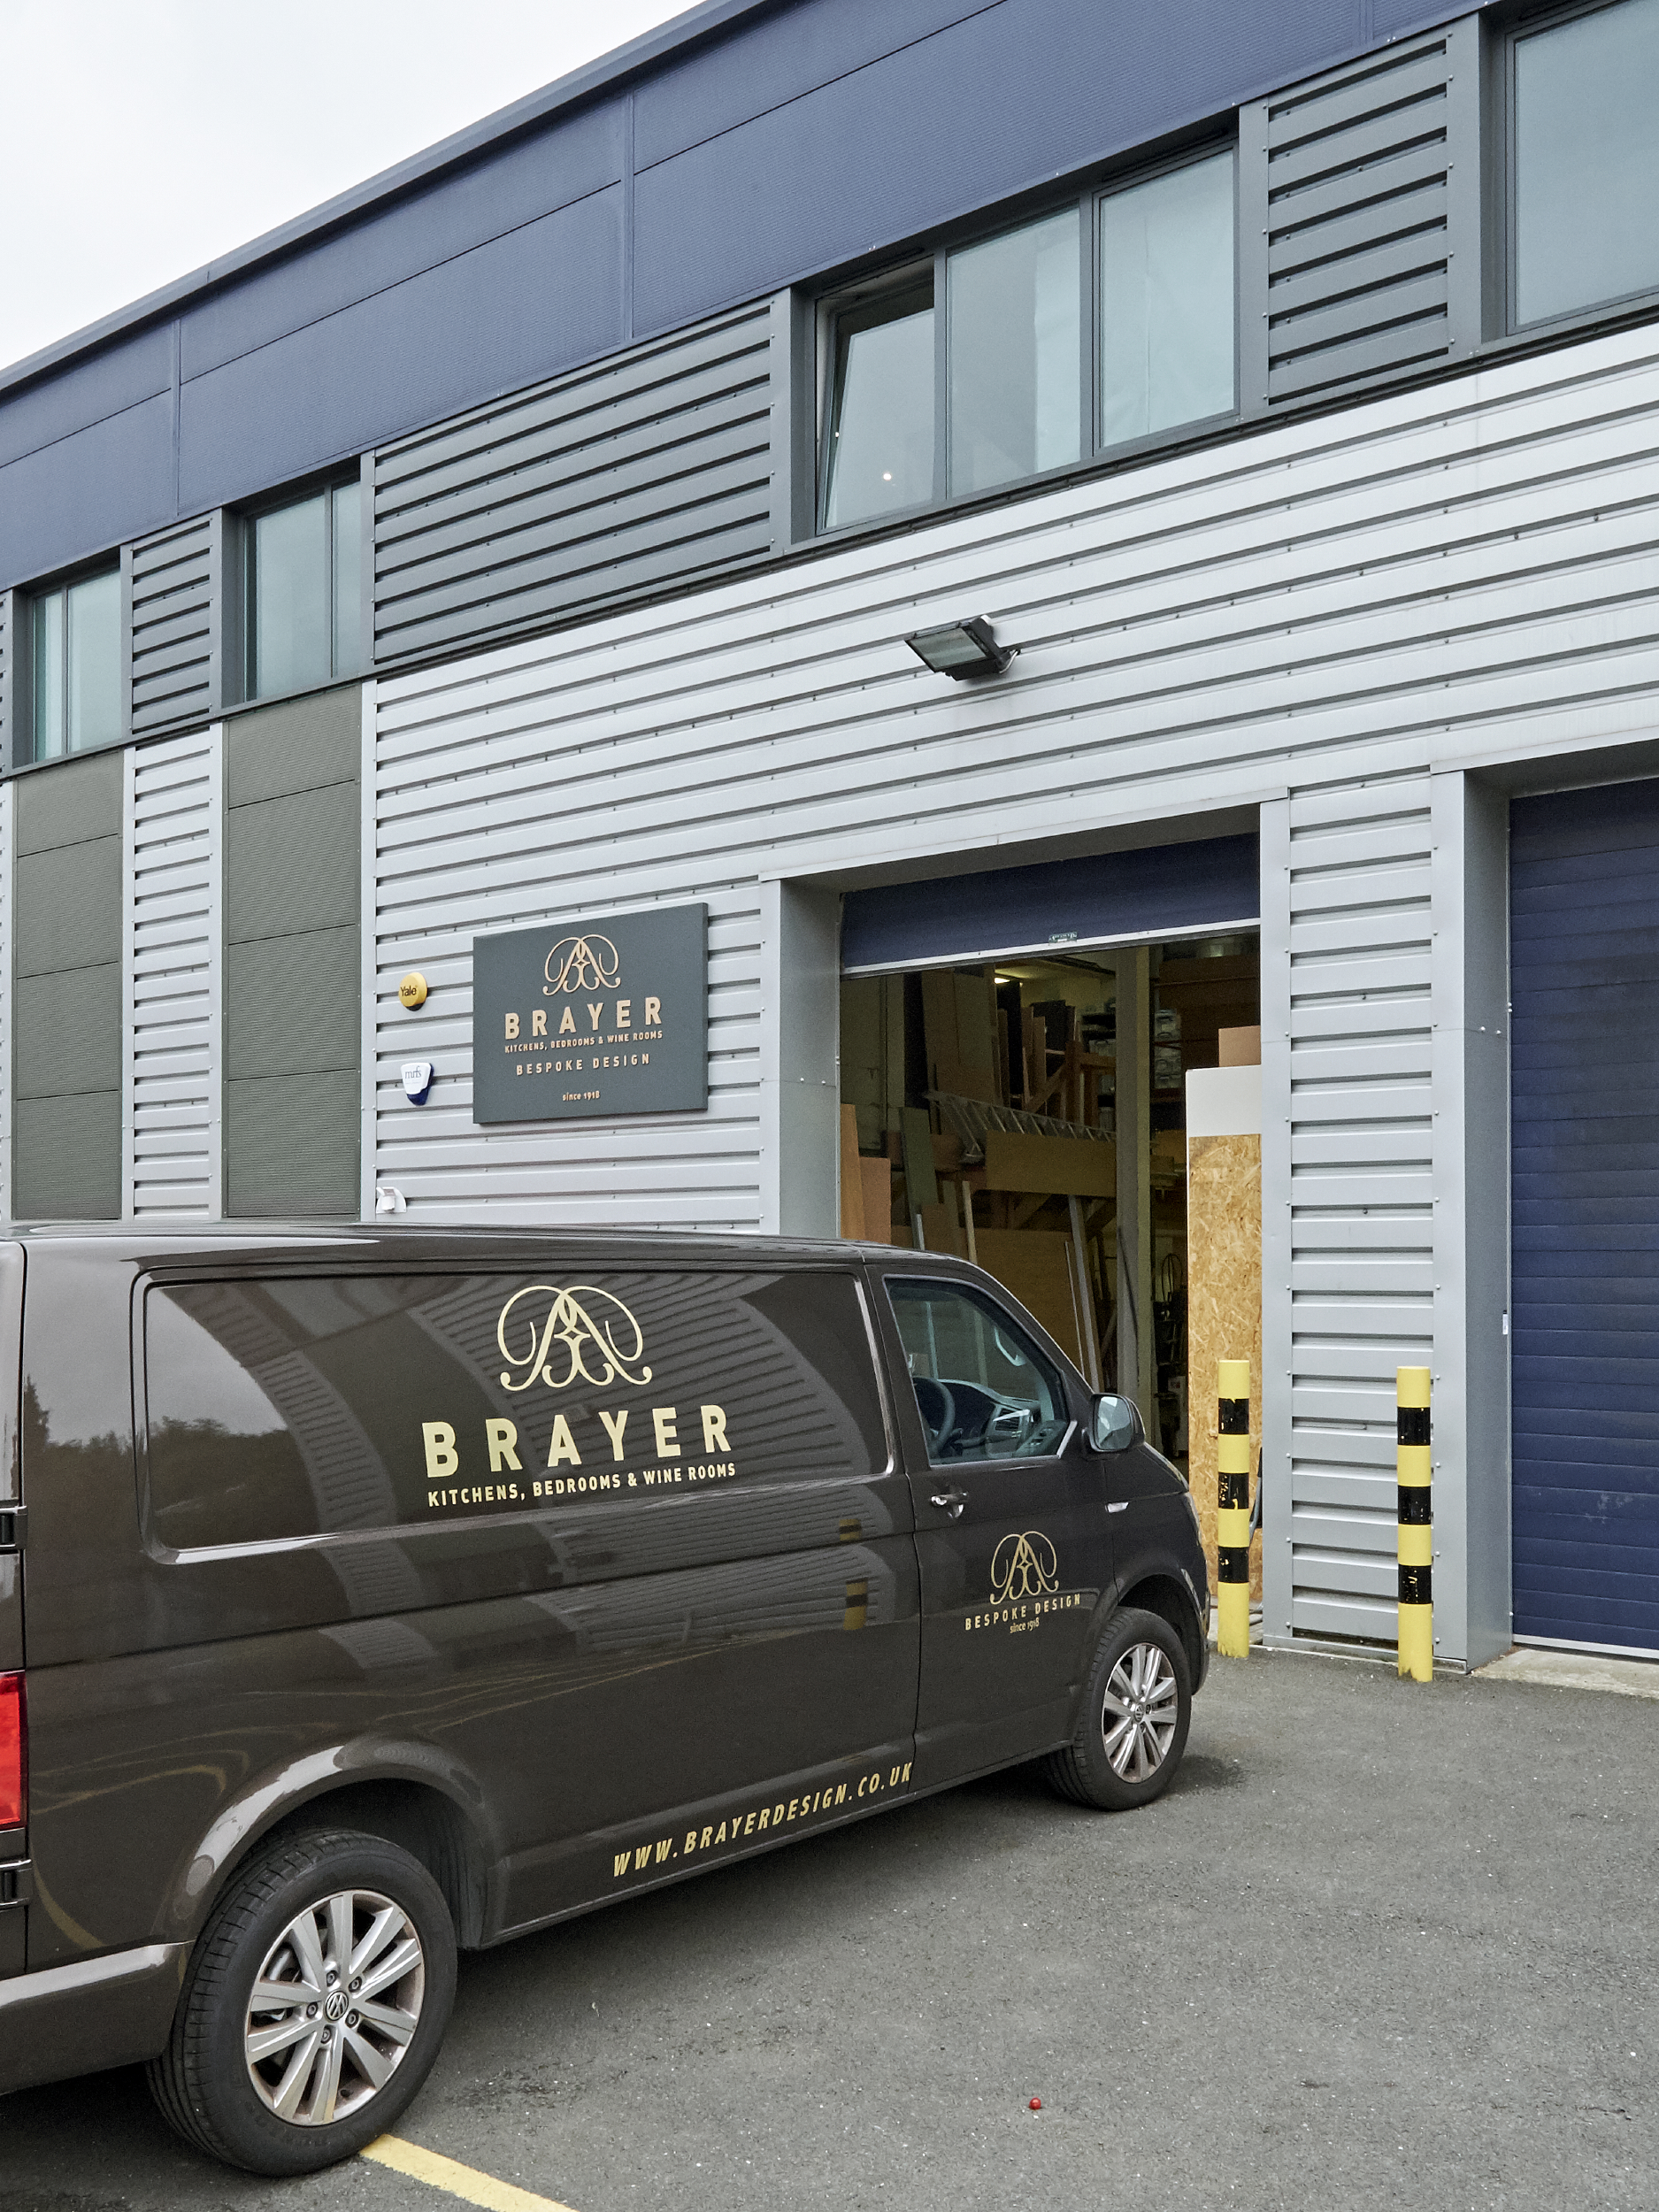 Brayer Design Workshop in Surbiton. Ground floor warehouse with van parked outside with design studio and showroom is on the first floor.